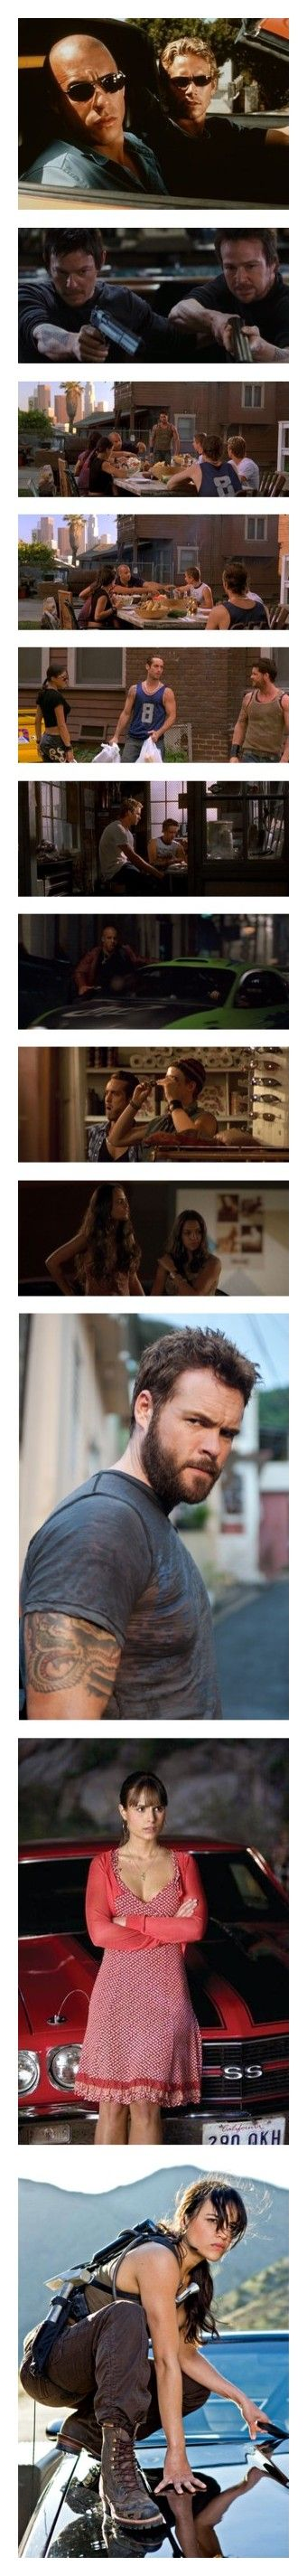 """""""Fast and Furious"""" by emma-frost-98 ❤ liked on Polyvore featuring movies, people, paul, paul walker, fast and furious, fast and the furious, brunettes, michelle rodriguez, fast & furious and boys"""